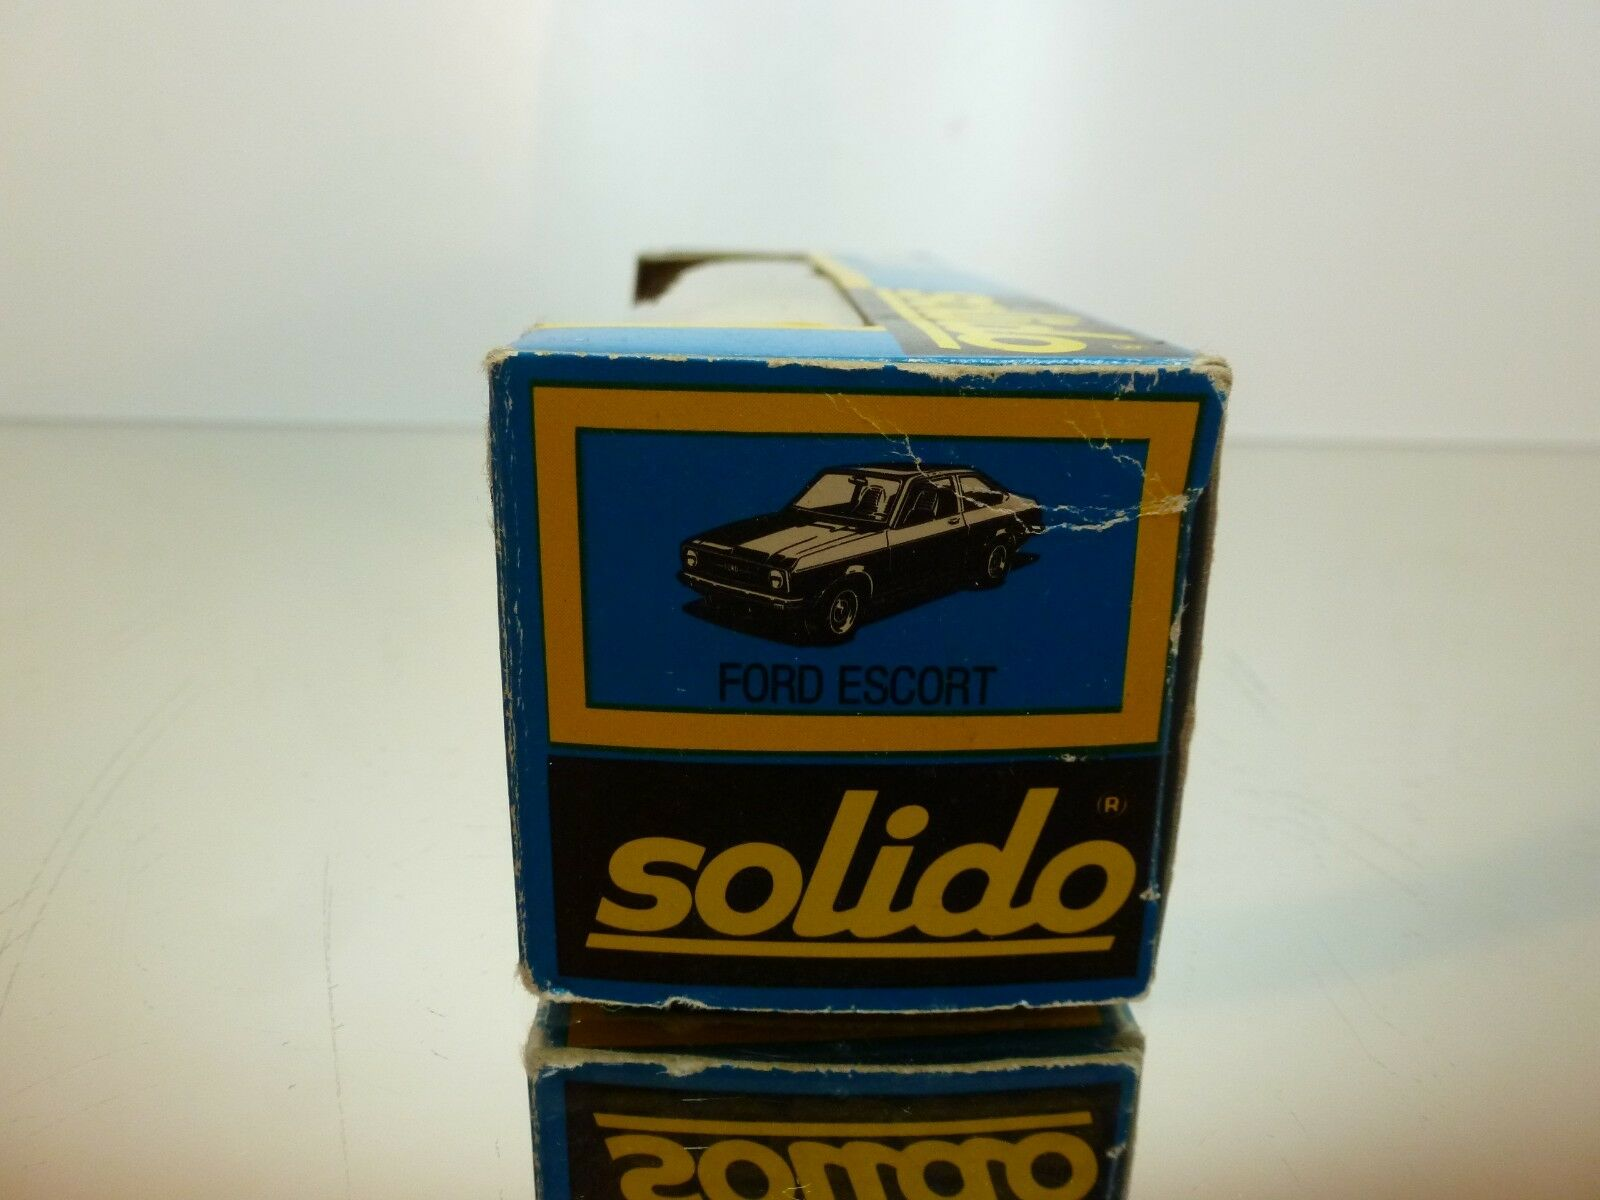 SOLIDO 45 FORD ESCORT  - YELLOW 1 43 43 43 - VERY GOOD CONDITION IN BOX 5f40cb